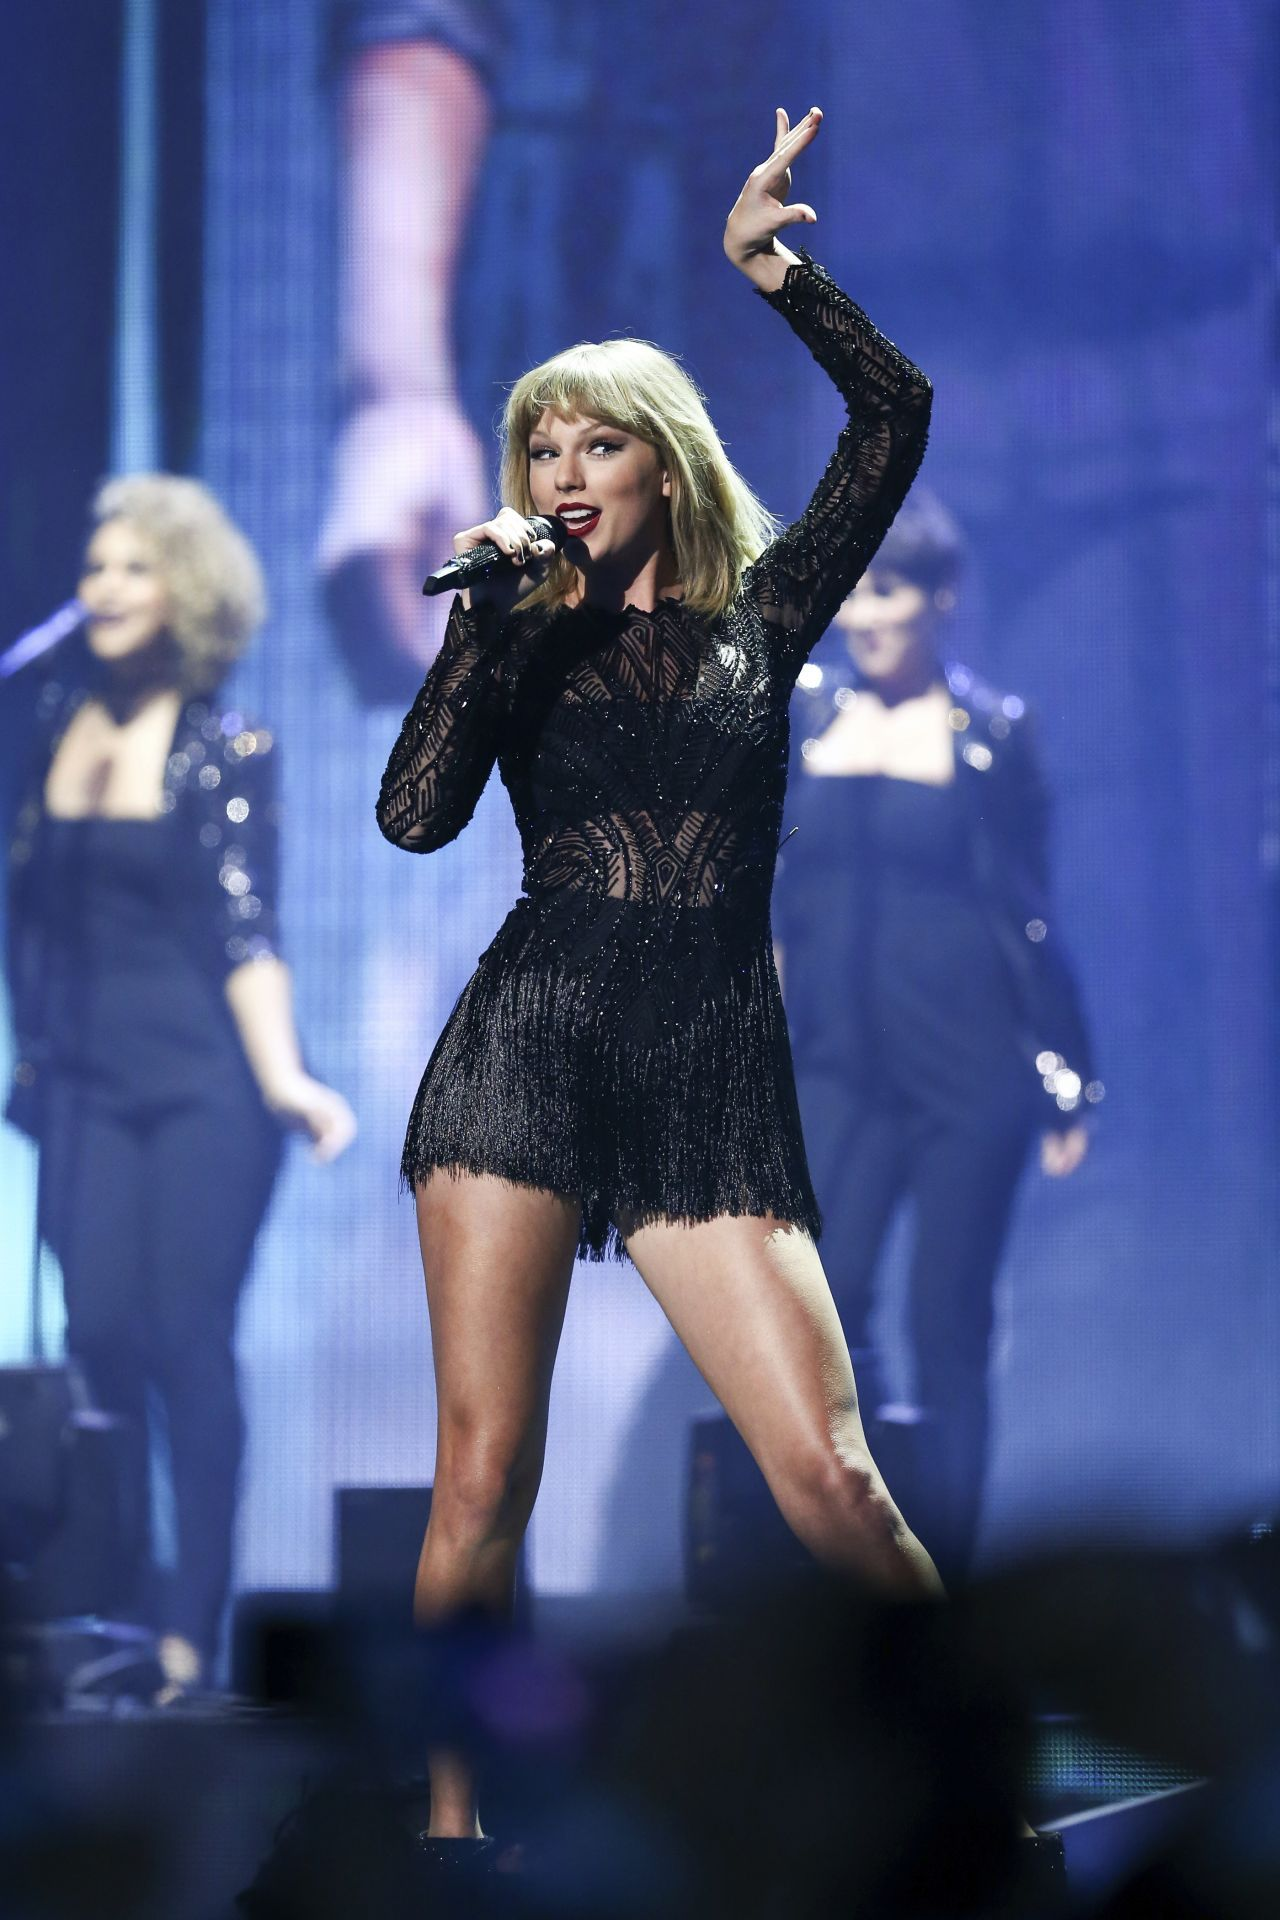 Taylor Swift Photo Gallery Taylor Swift 2017 Taylor Swift Hot Taylor Swift Concert